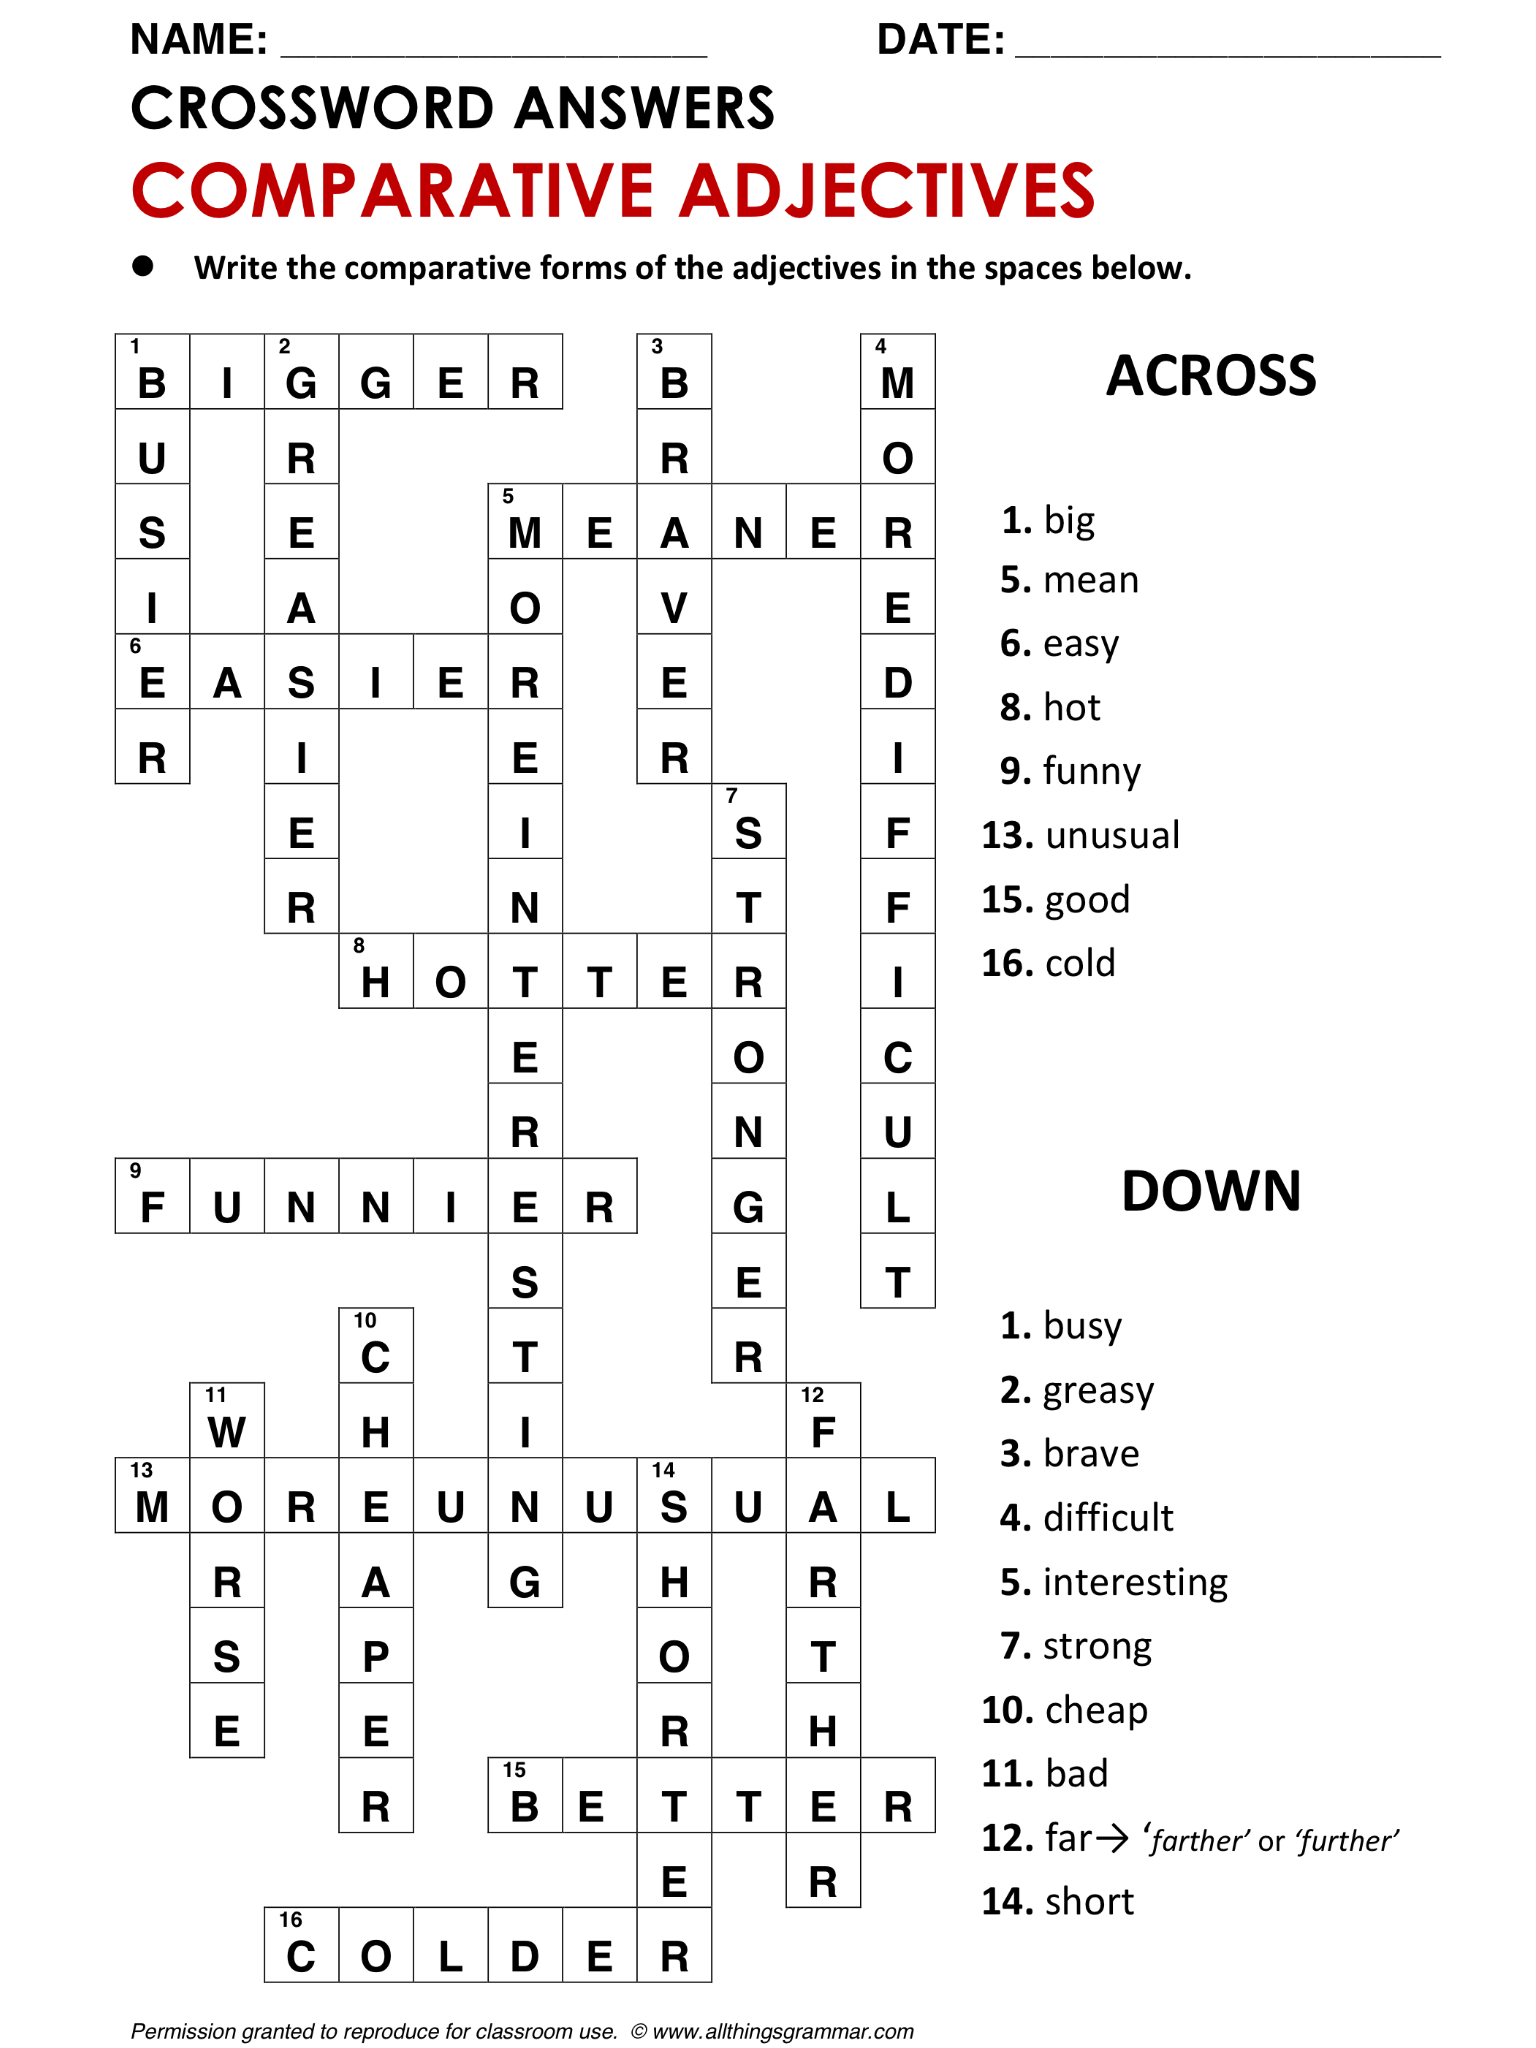 English Grammar Crossword Comparative Adjectives